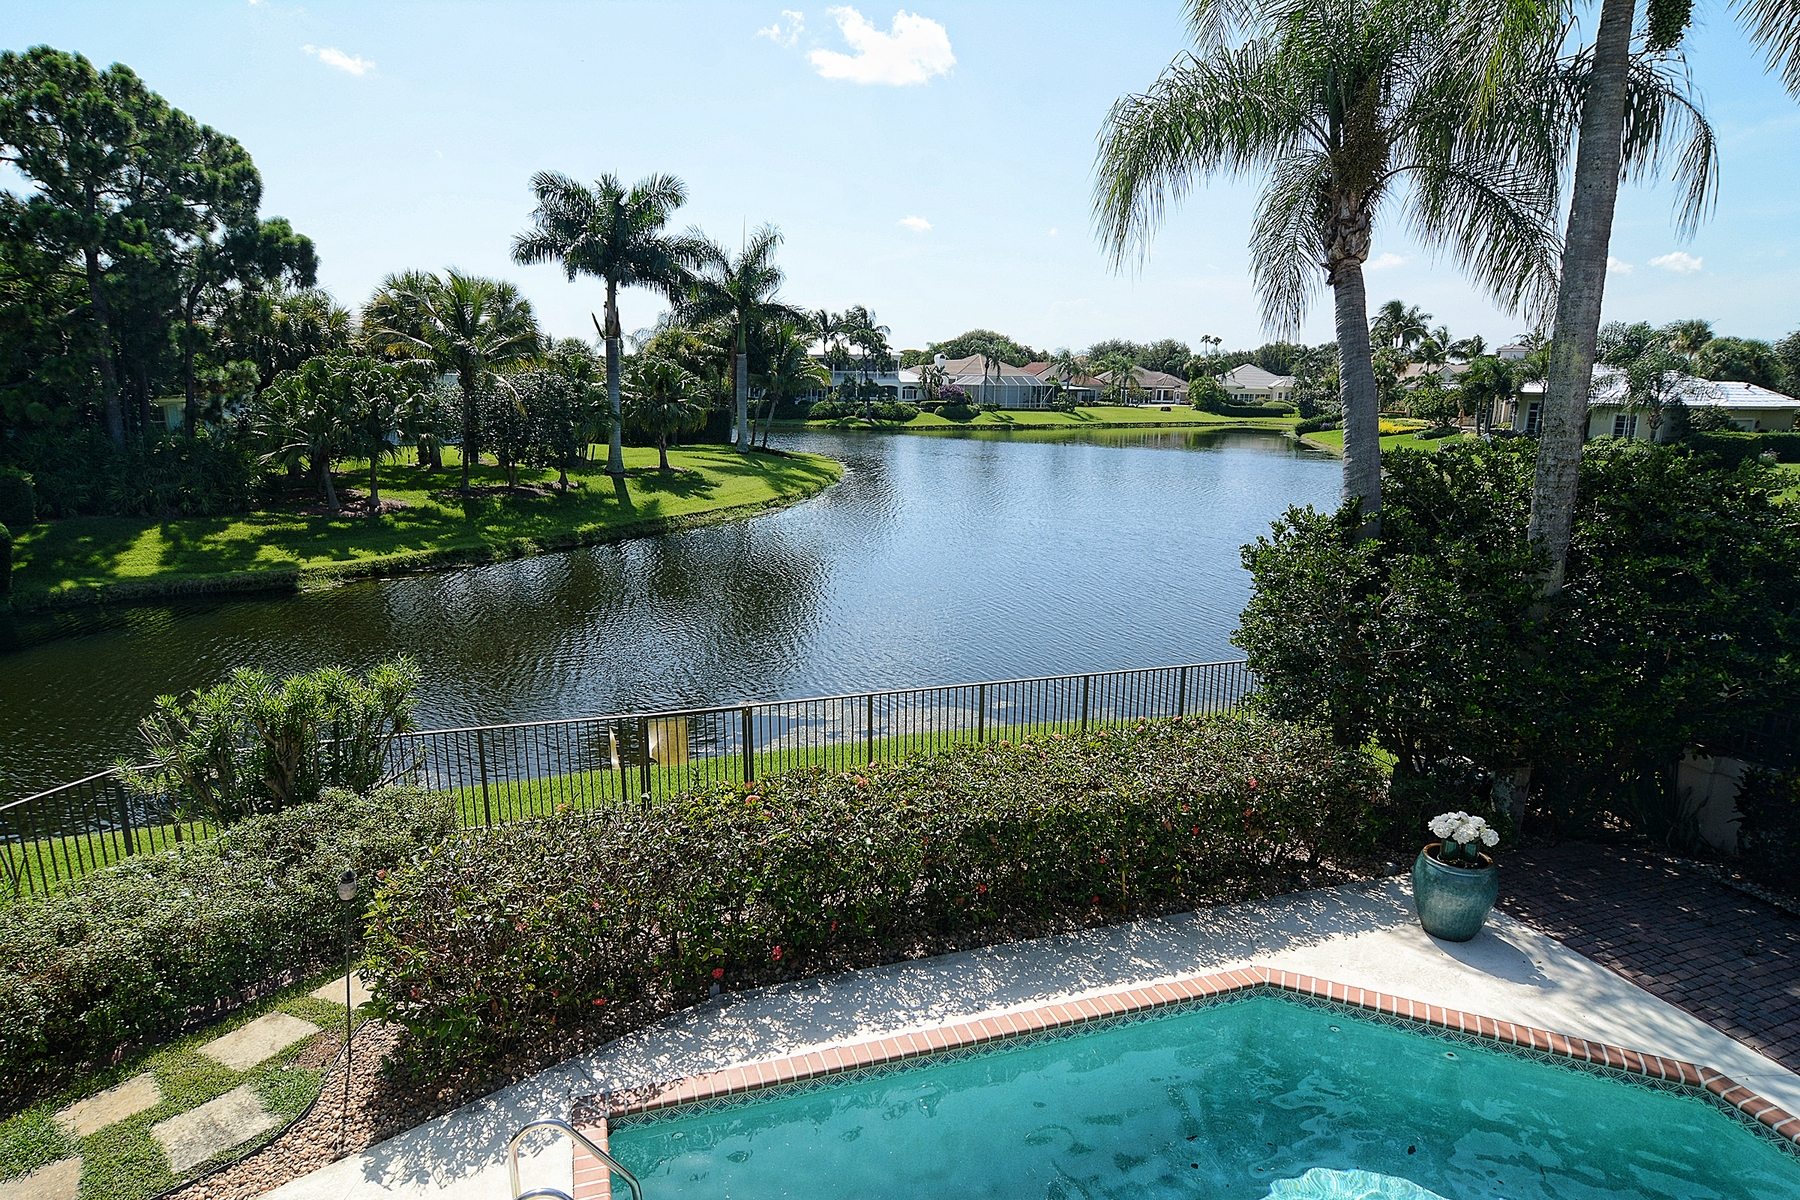 Single Family Home for Sale at 204 Chinook Lane The Loxahatchee Club, Jupiter, Florida, 33458 United States